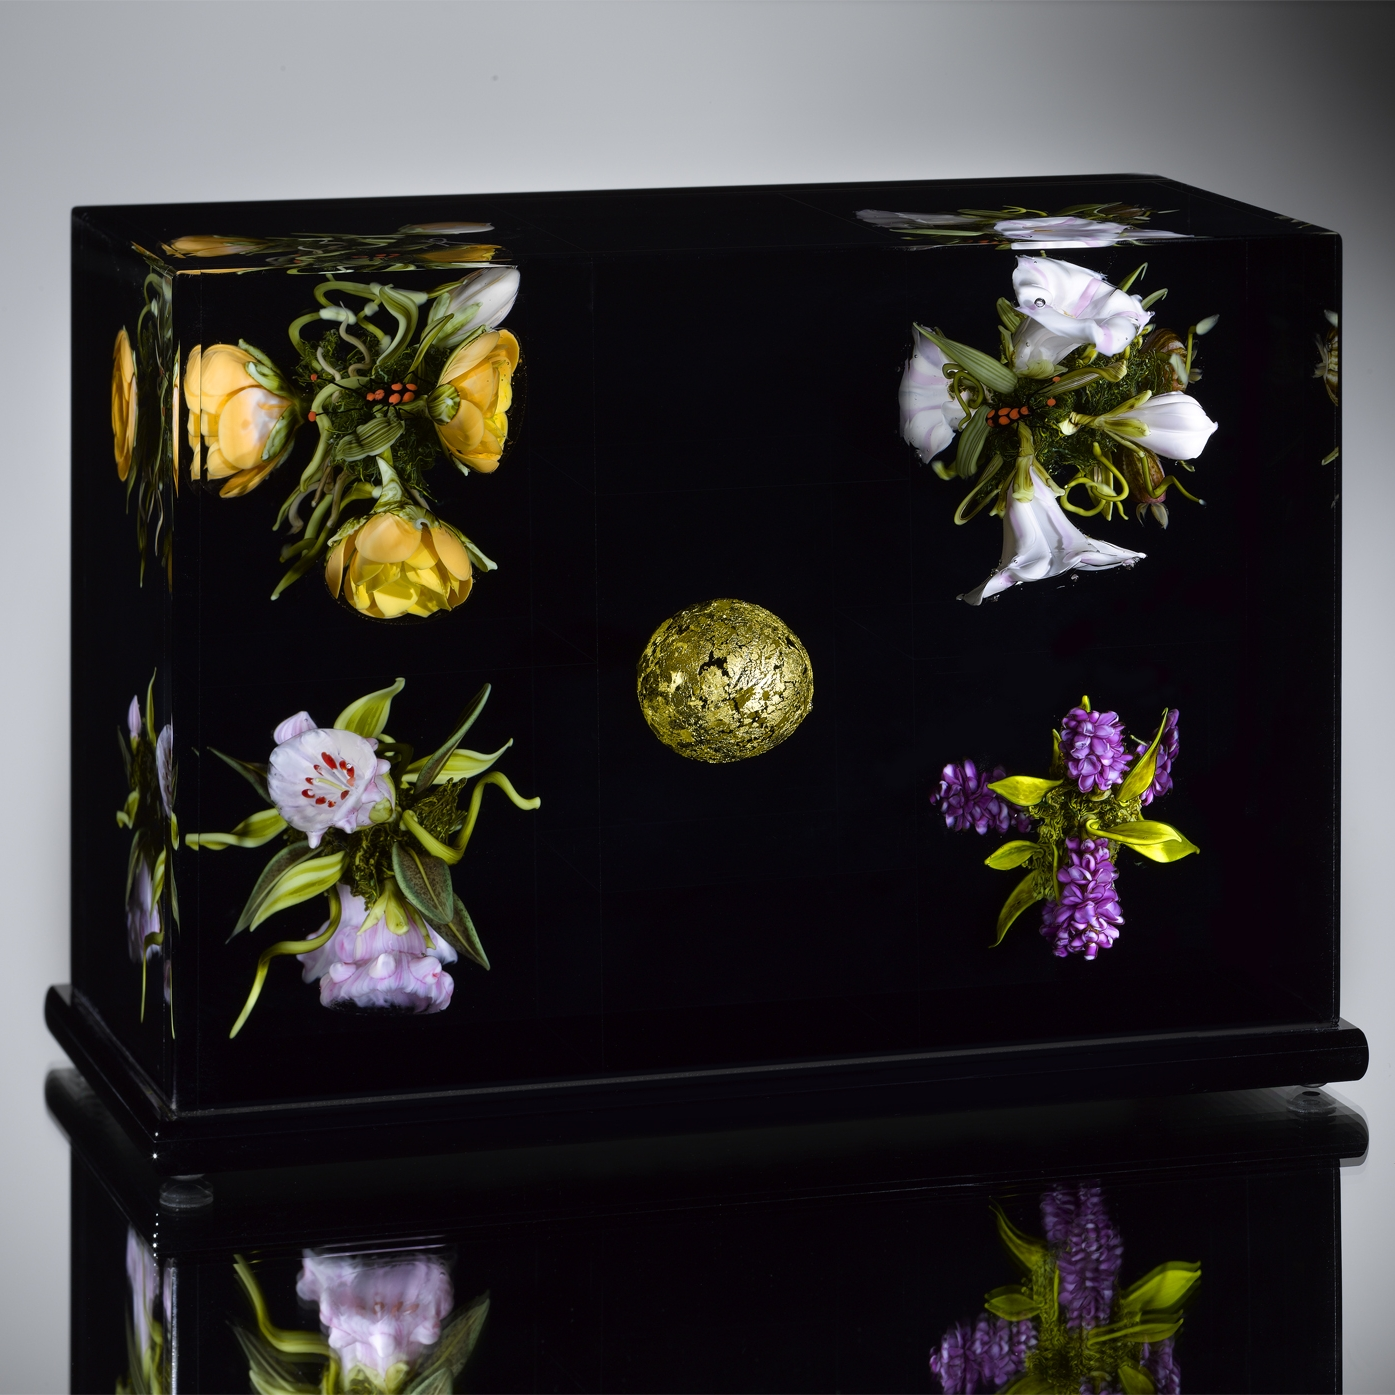 2009; Golden Orb Floral Triptych; H. 5.37 x L. 7.75 x W. 4.0 inches; The Minkoff Collection